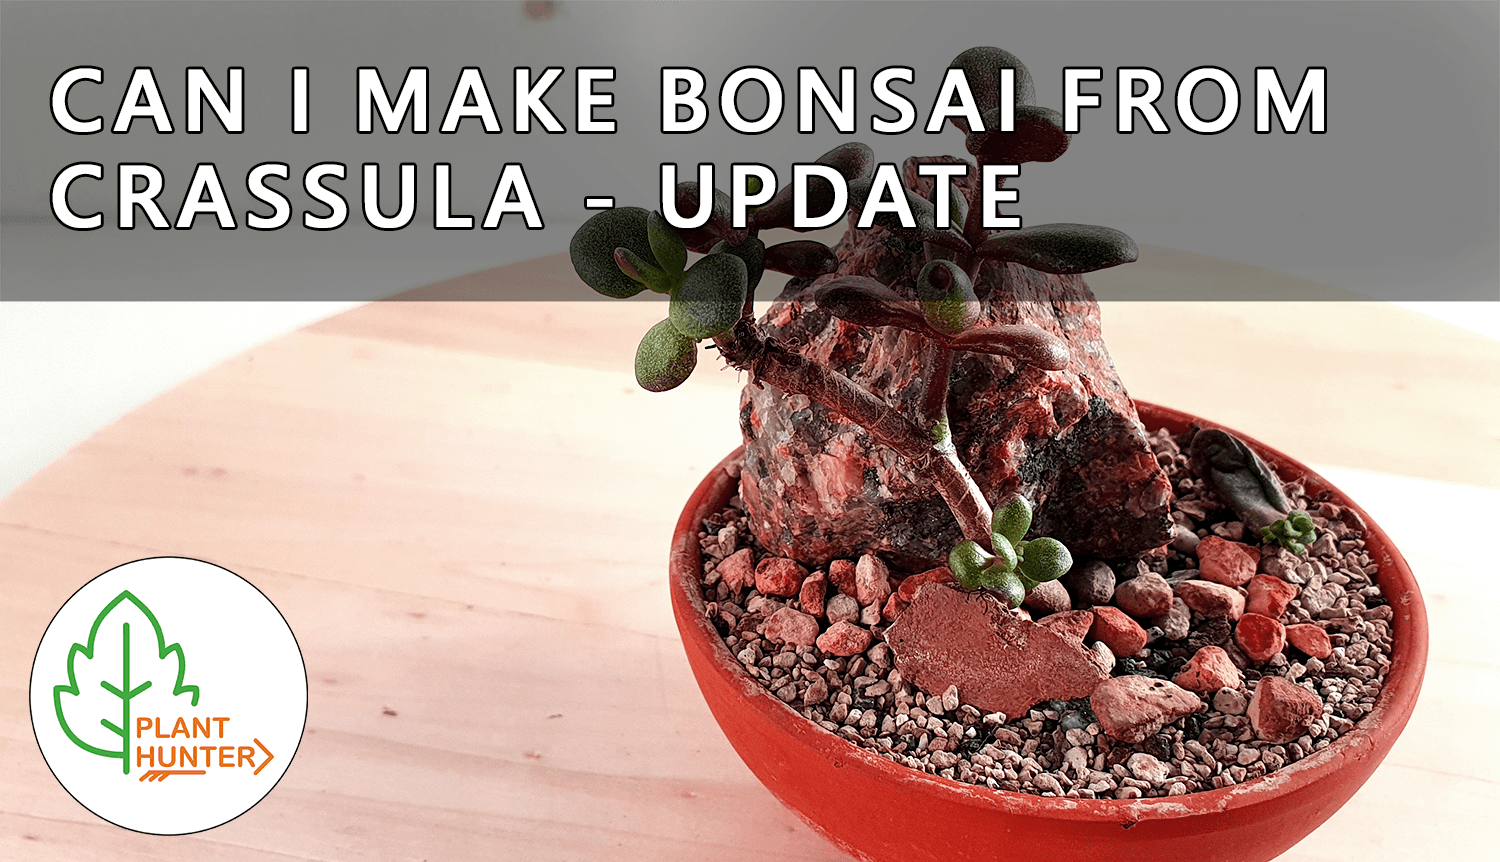 Succulent bonsai update